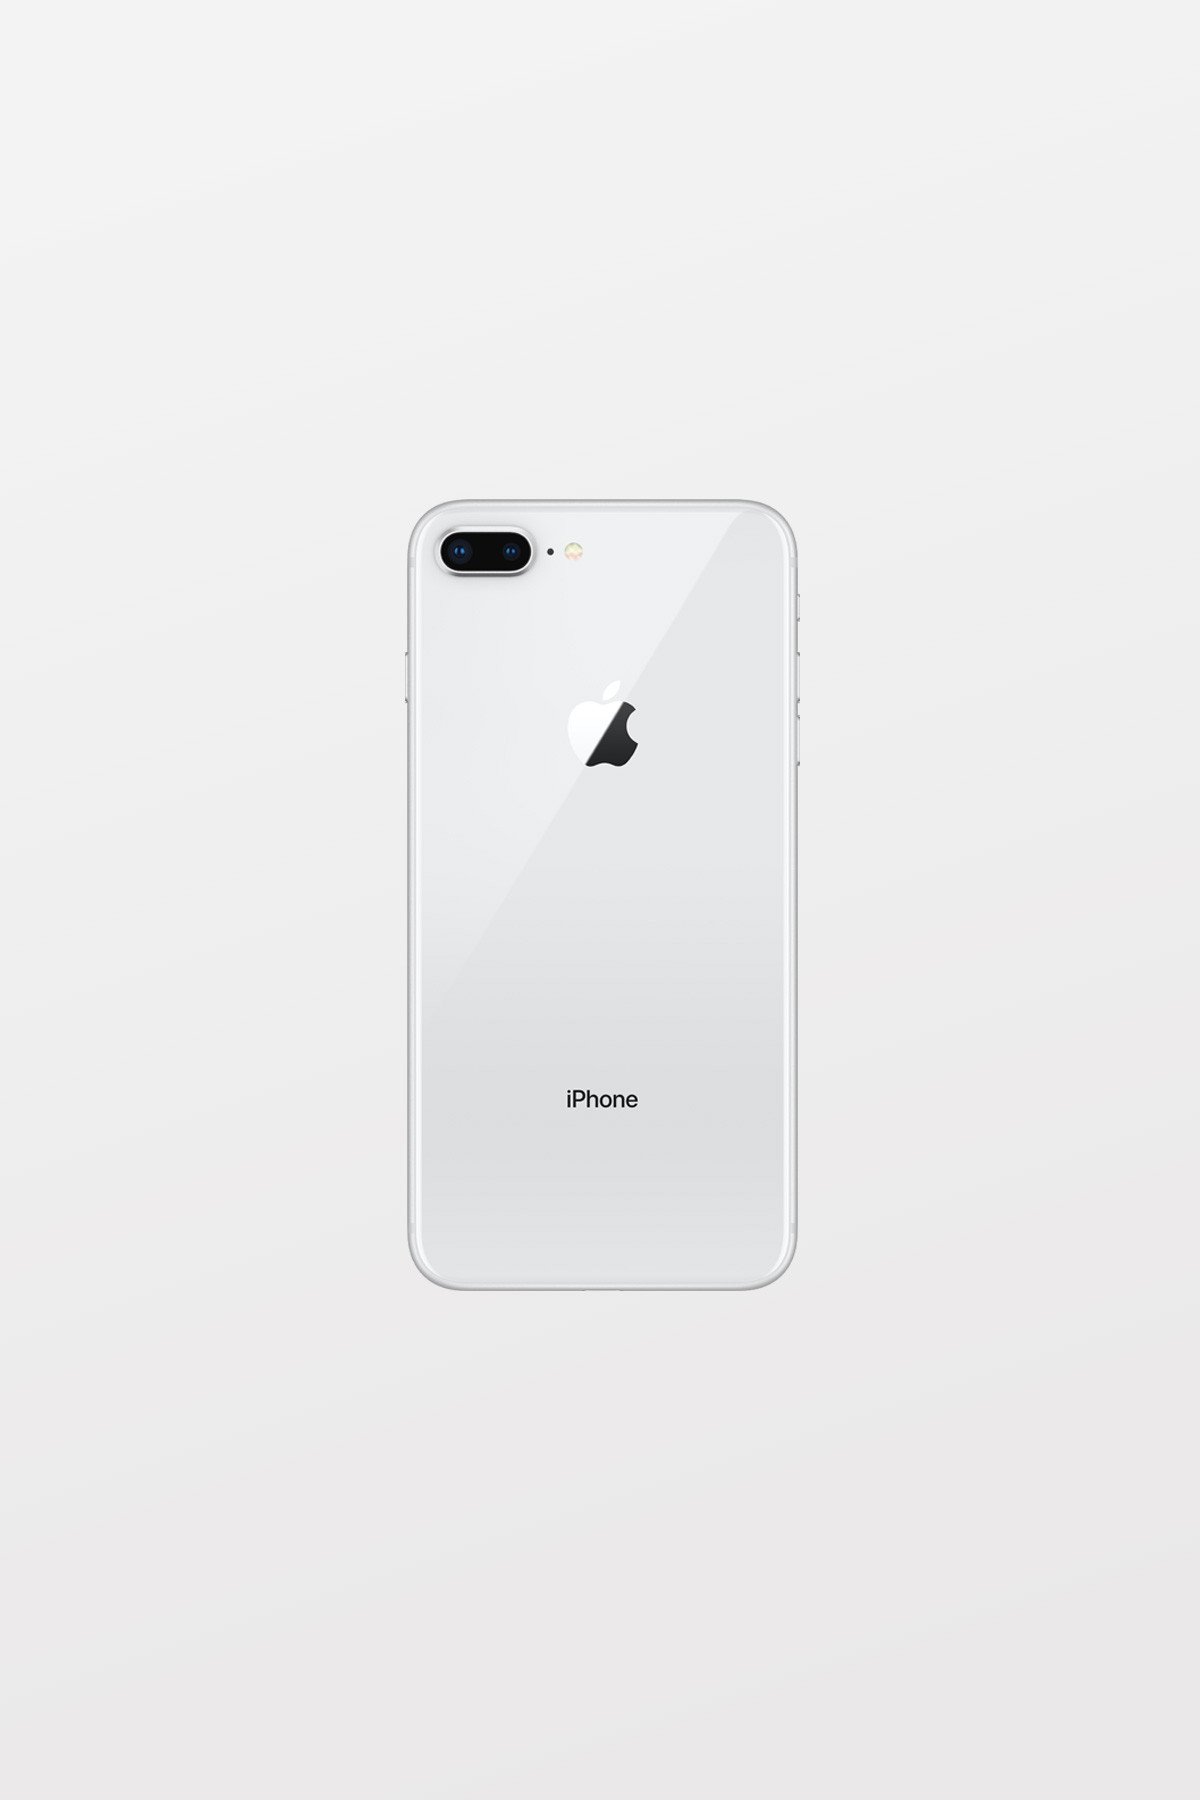 On the contrary, this is the same Apple hardware that you would get if you walked into a beautiful Apple retail store and it's going to offer the same experience due to the fact that it's been brought back up to standard through tests and inspections by Amazon-certified suppliers.